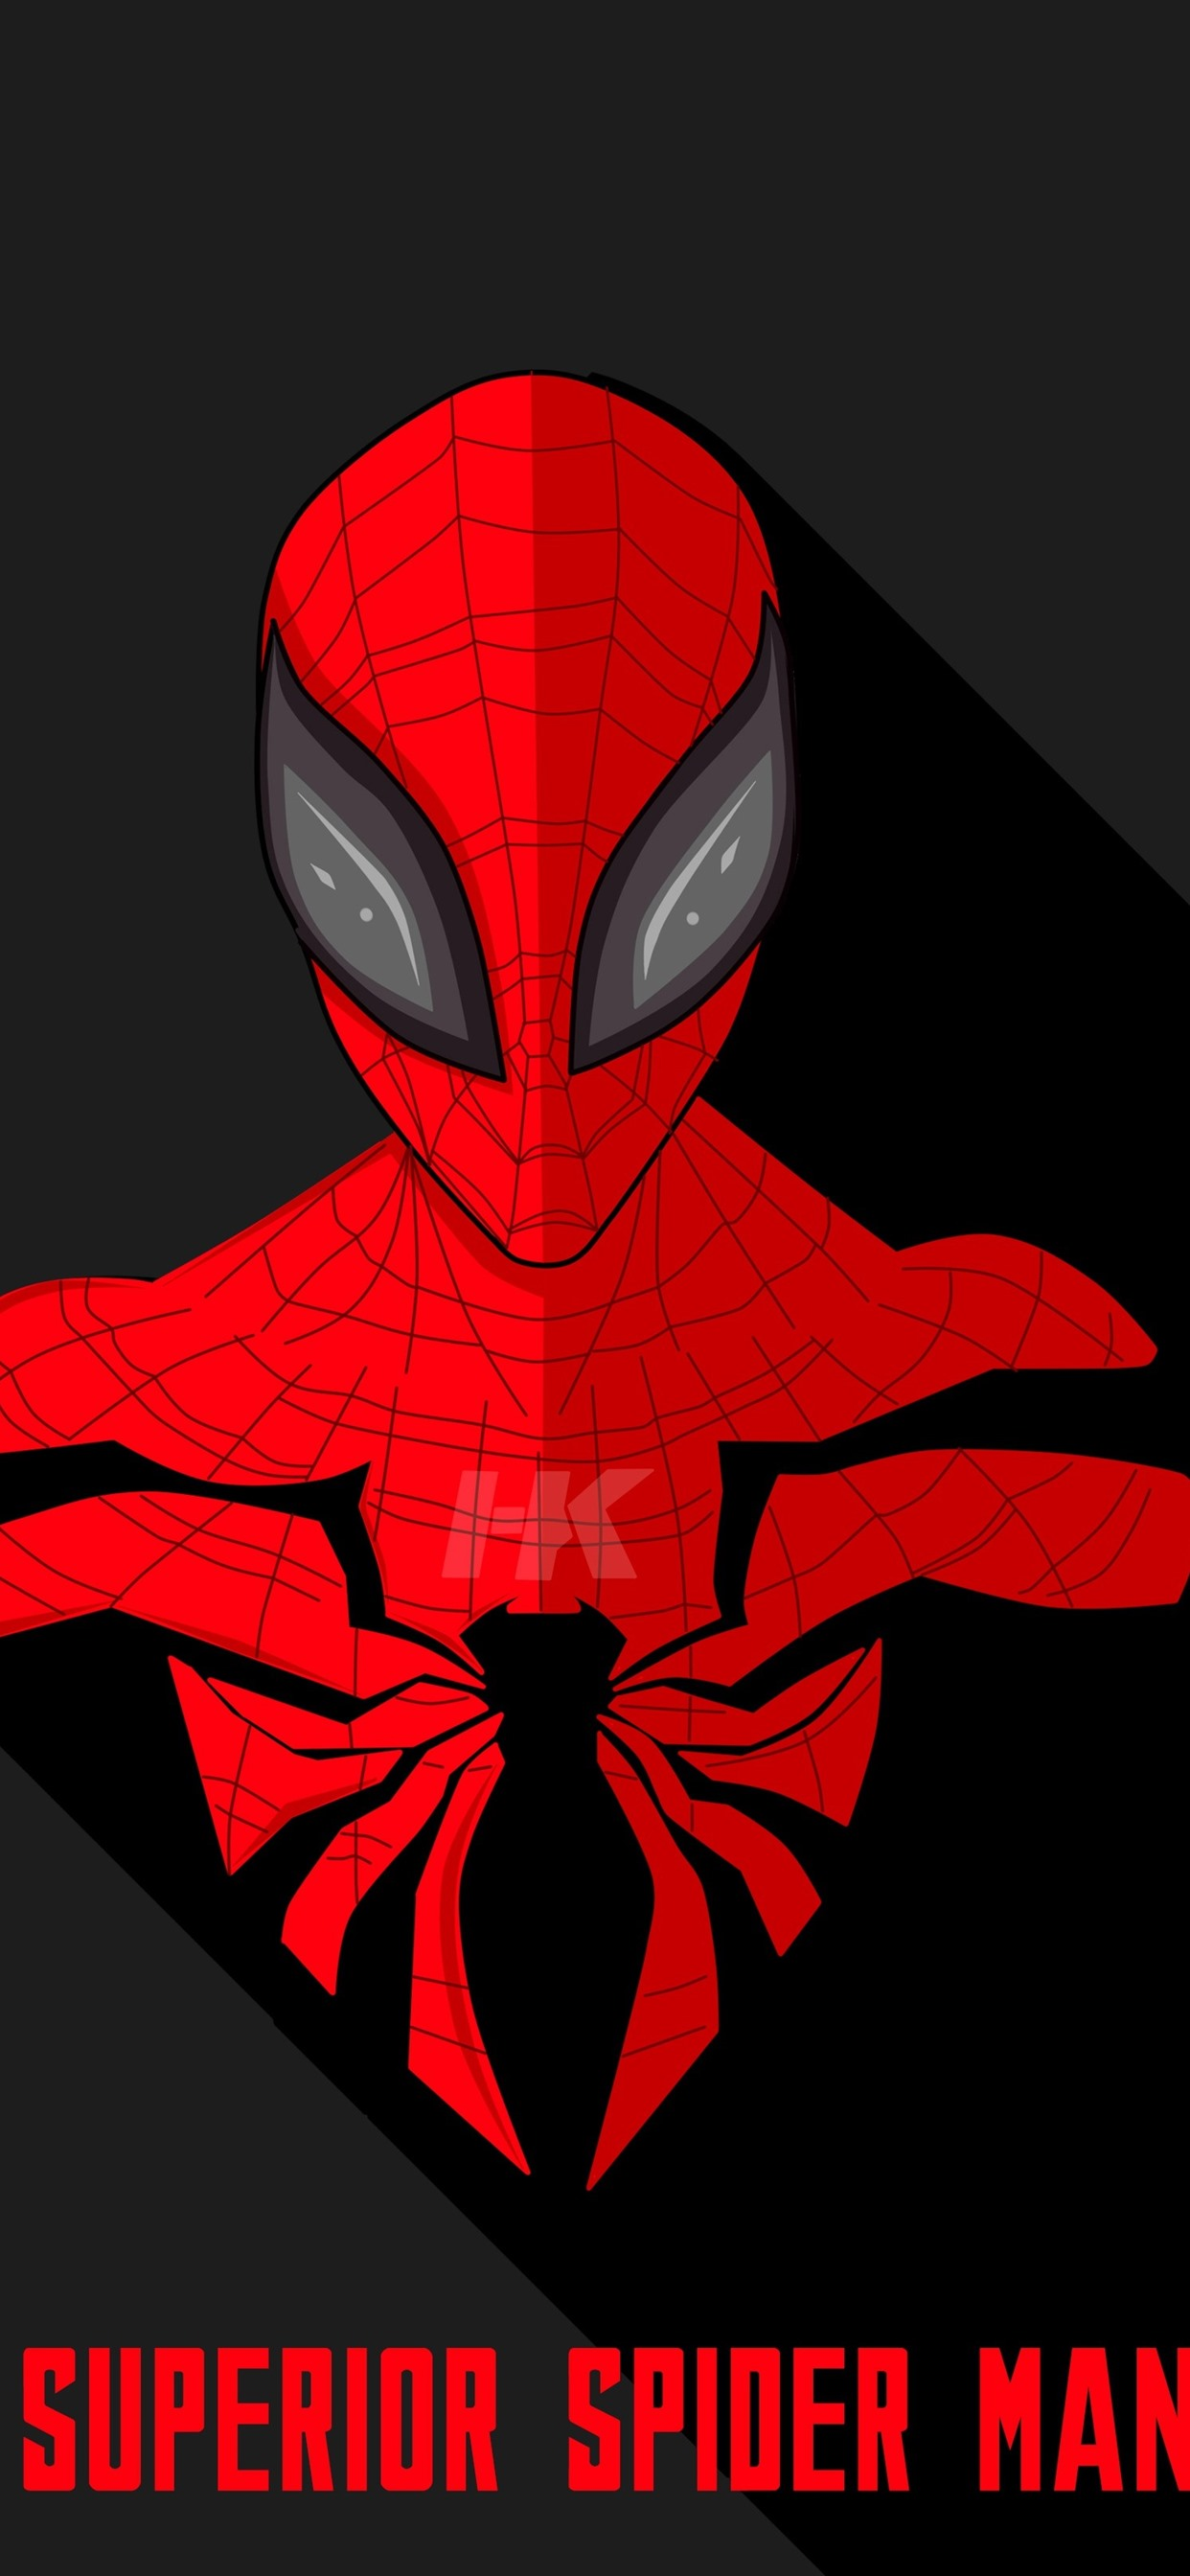 Spider Man Dc Comics Hero 1242x2688 Iphone Xs Max Wallpaper